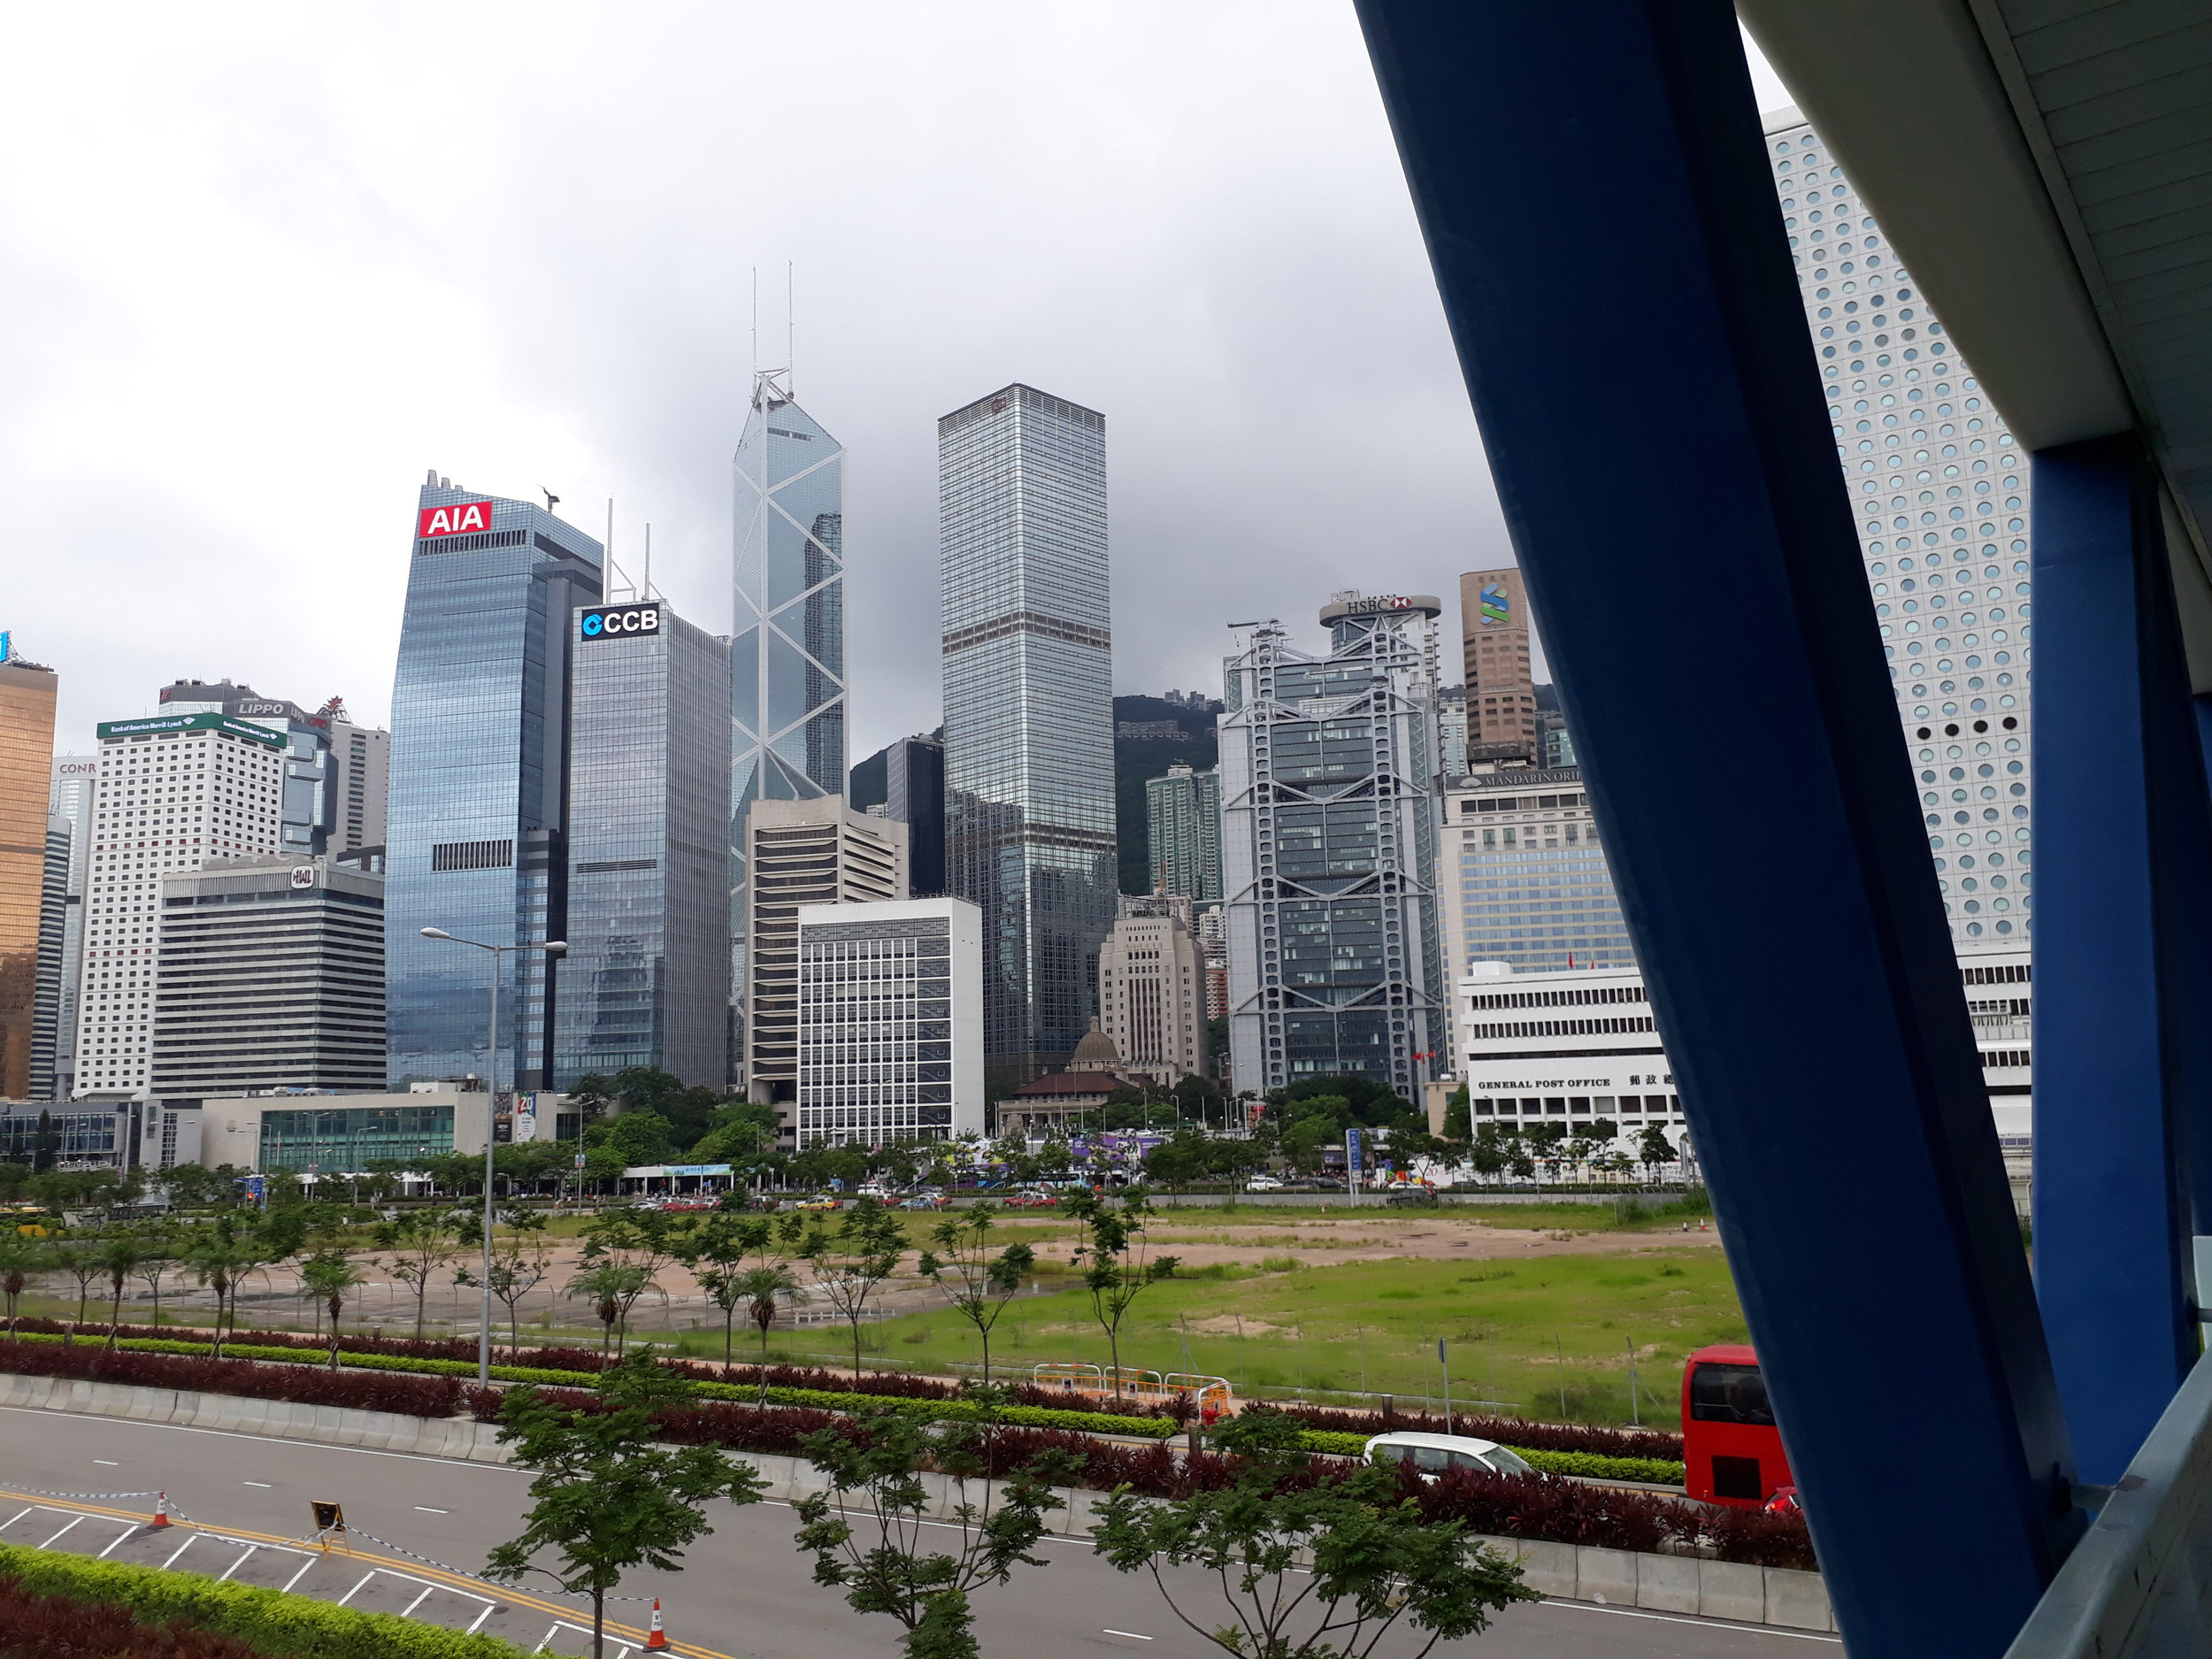 Hard to get my bearings in Hong Kong! The Law Courts and iconic Bank of China building look like toy-town nestled in the middle of all the skyscrapers.